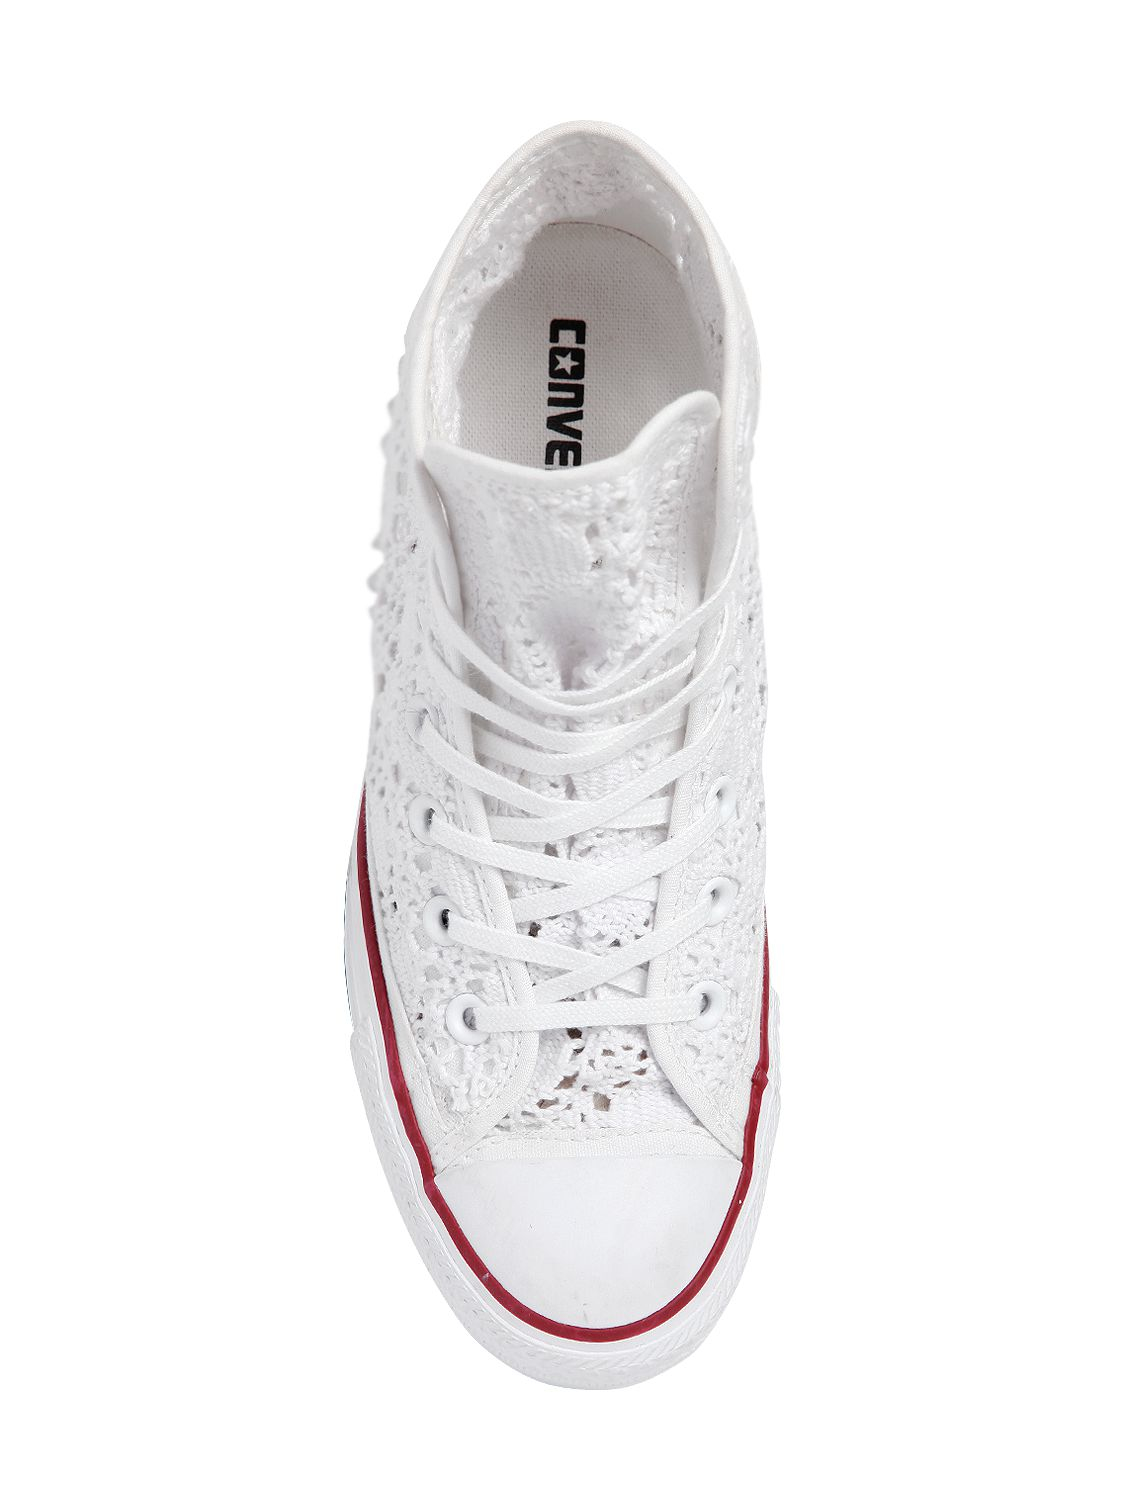 Converse Chuck Taylor Crocheted Cotton Sneakers in White